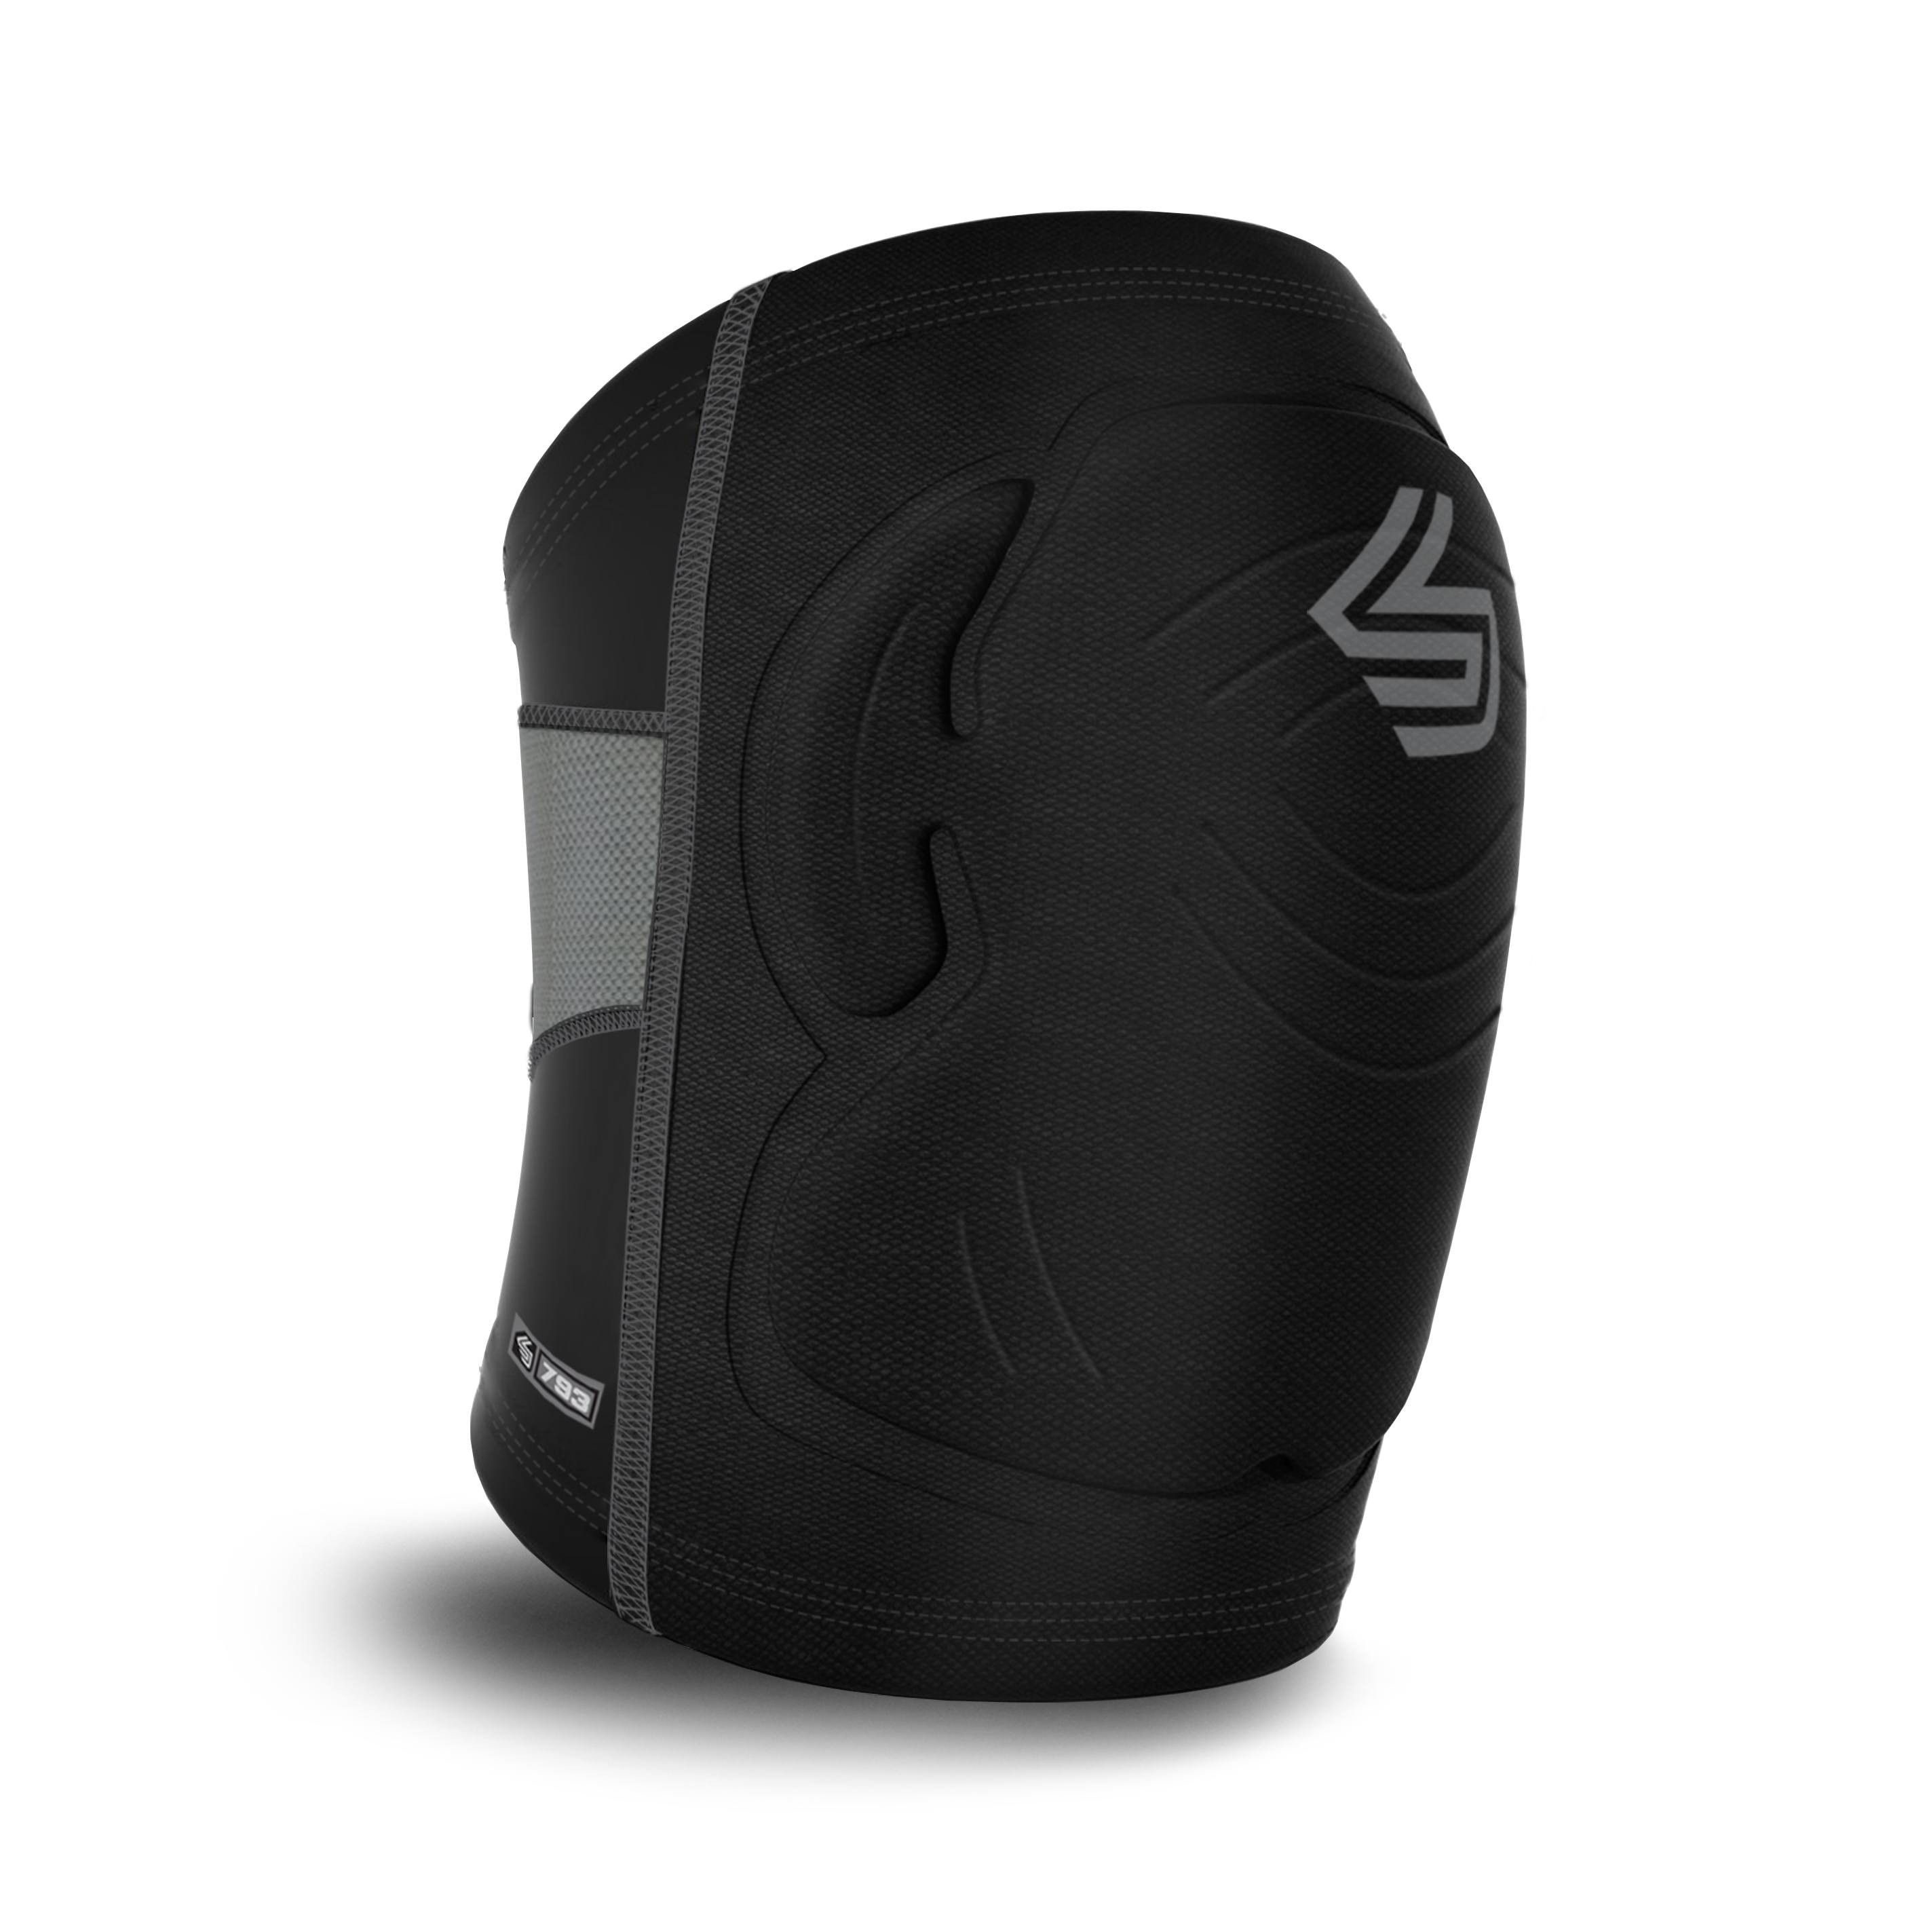 The Shockskin Basketball And Volleyball Protective Knee Pads Offers Lightweight Flexible Protective Shockskin Padding That Contours With Images Straps Supportive Knee Pads